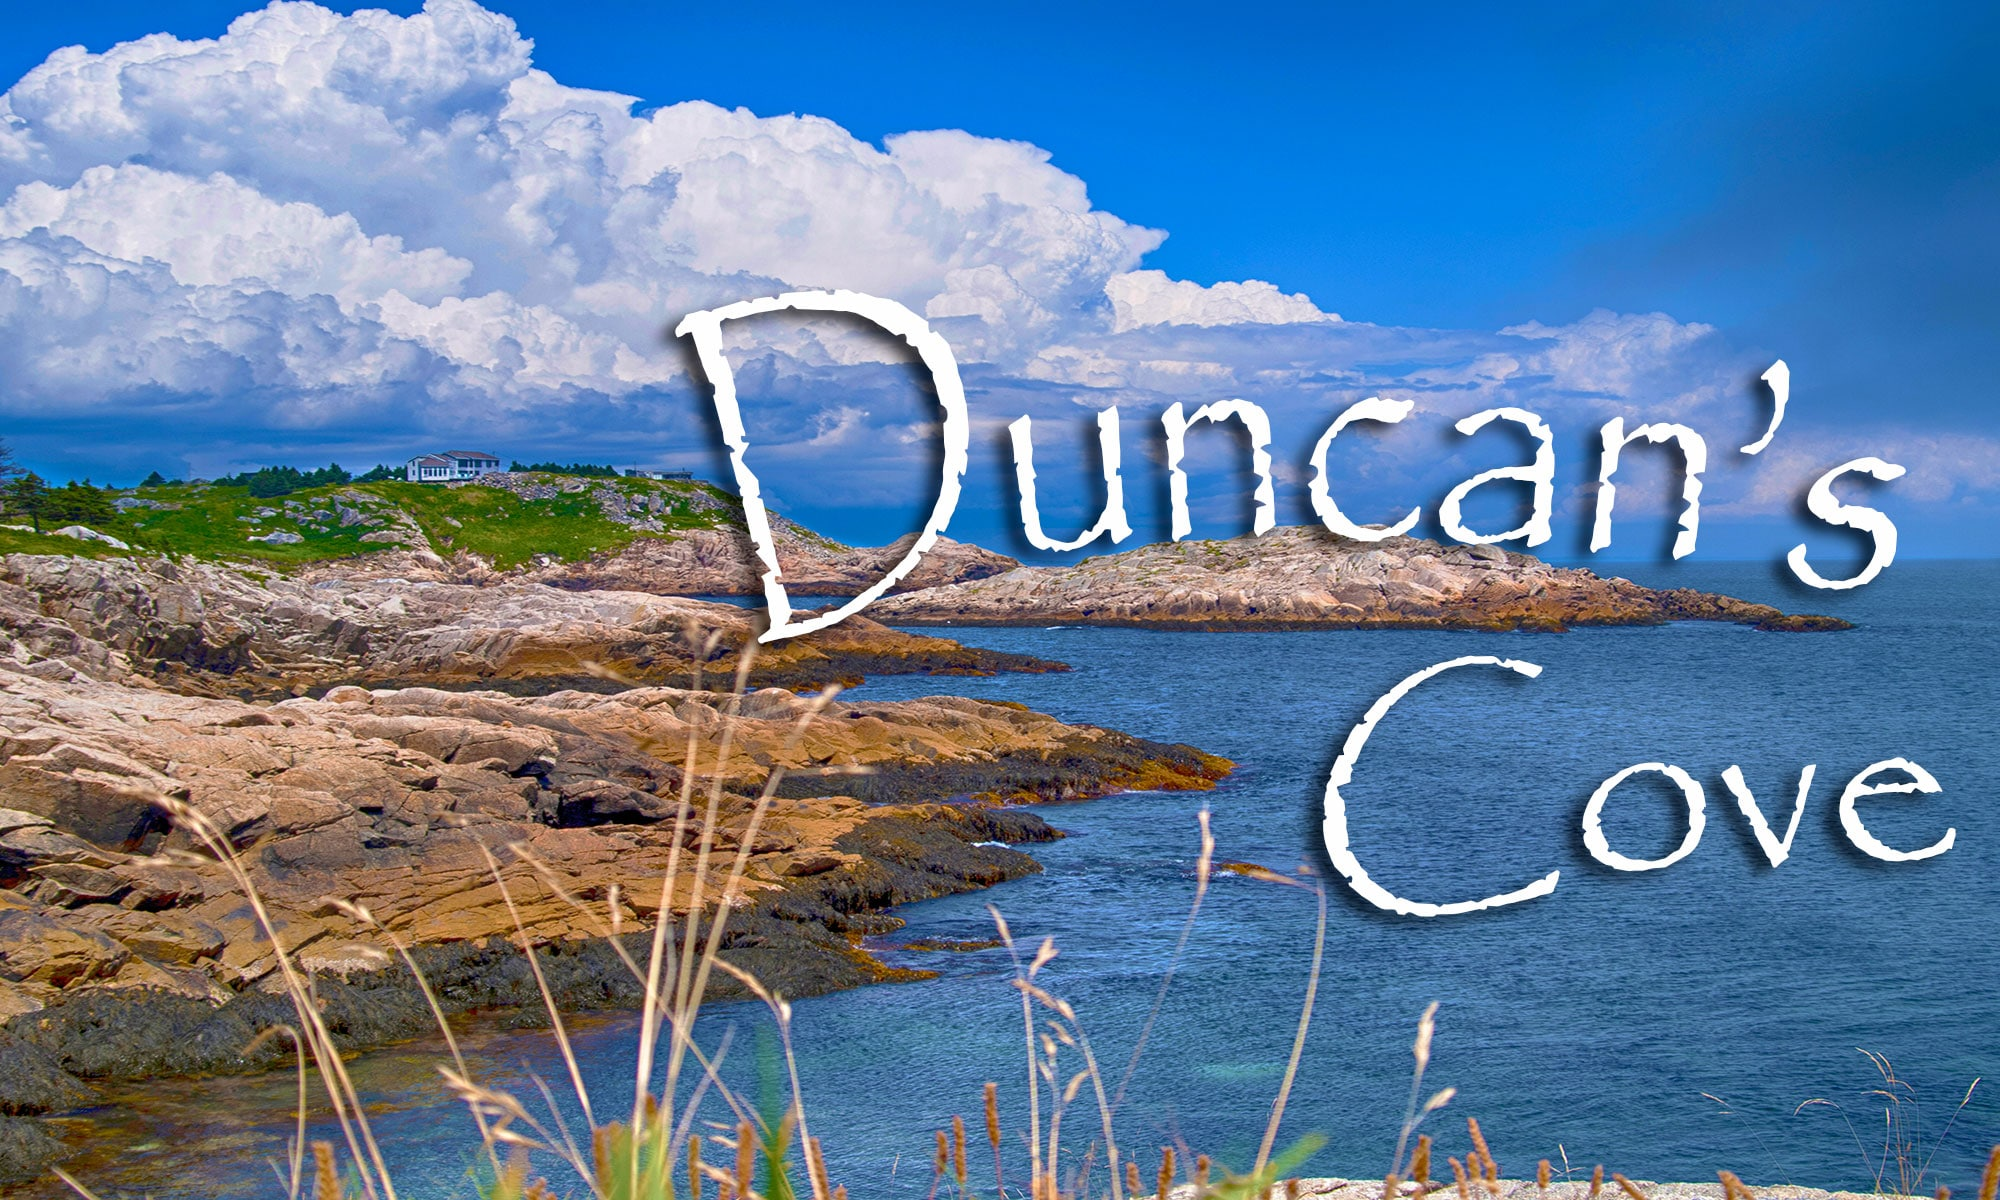 Duncan's Cove Photos